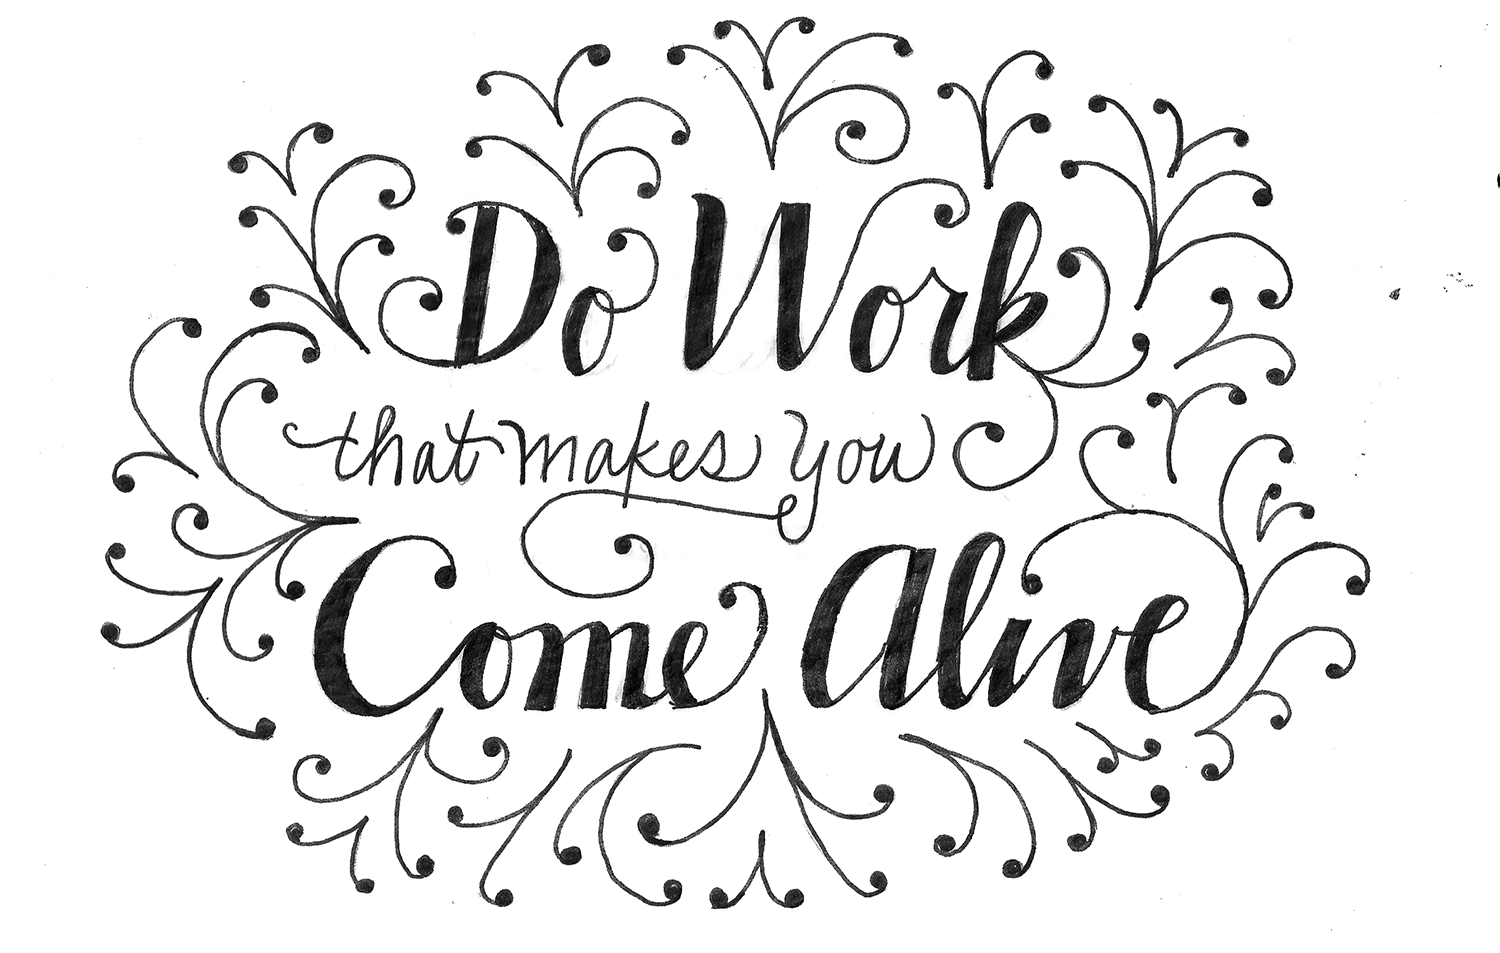 Work that makes you come alive - image 3 - student project